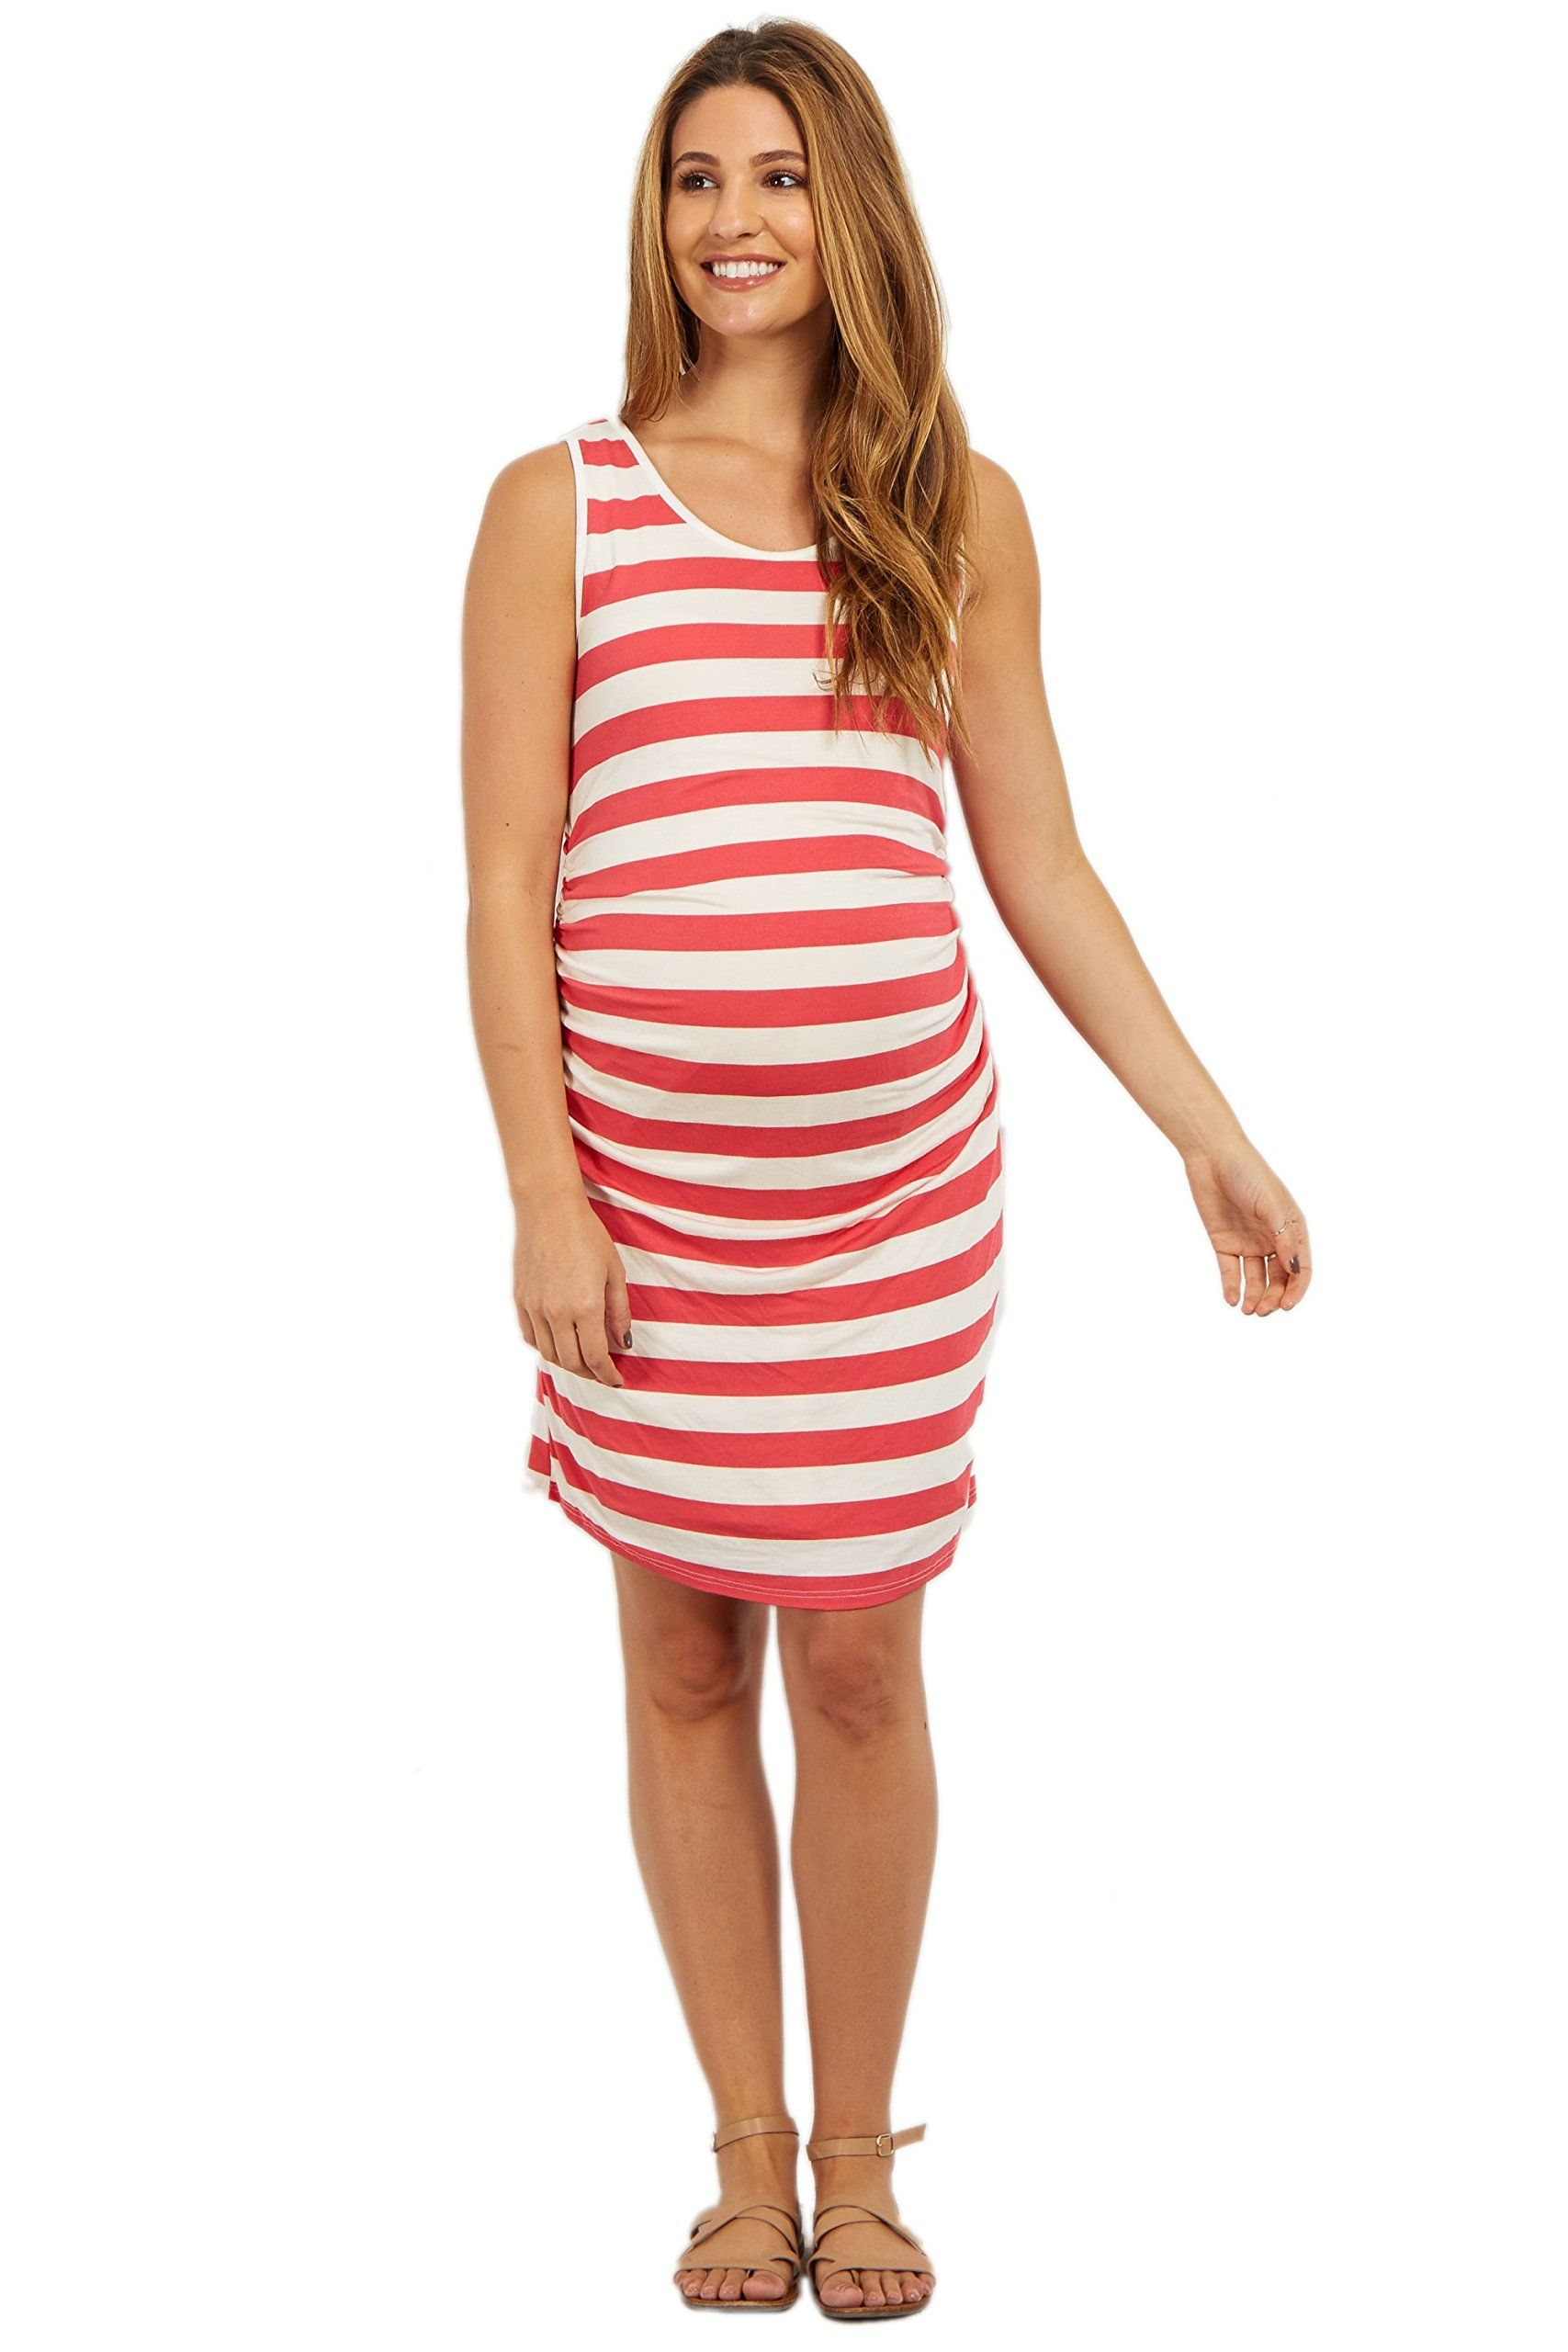 fb100ba7404 Maternity Fashion - comfortable maternity dresses   PinkBlush Maternity  Pink Striped Sleeveless Fitted Maternity Dress XL     Learn more at the  picture web ...